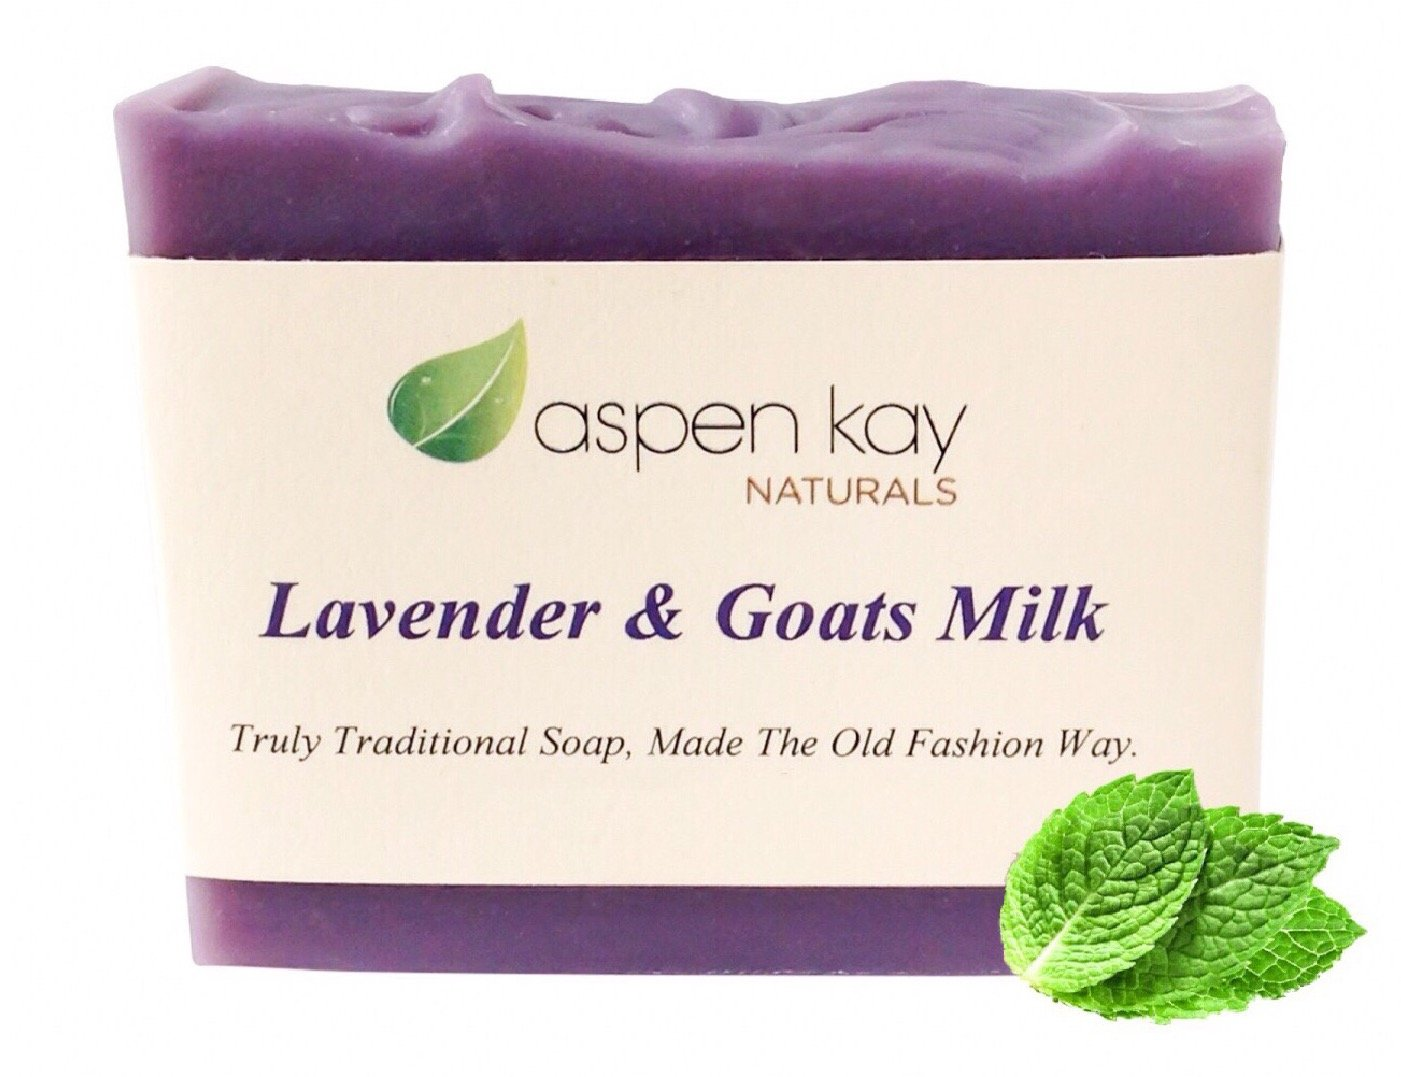 Lavender Goats Milk Soap Bar. 100% Natural and Organic Soap. Loaded With Organic Skin Loving Oil. This Soap Makes a Wonderful and Gentle Face Soap or All Over Body Soap. For Men, Women, Teens and Babies. GMO Free - Chemical Free - Preservative Free. Each Bar Is Handmade By Our Artisan Soap Maker. 4 oz Bar.